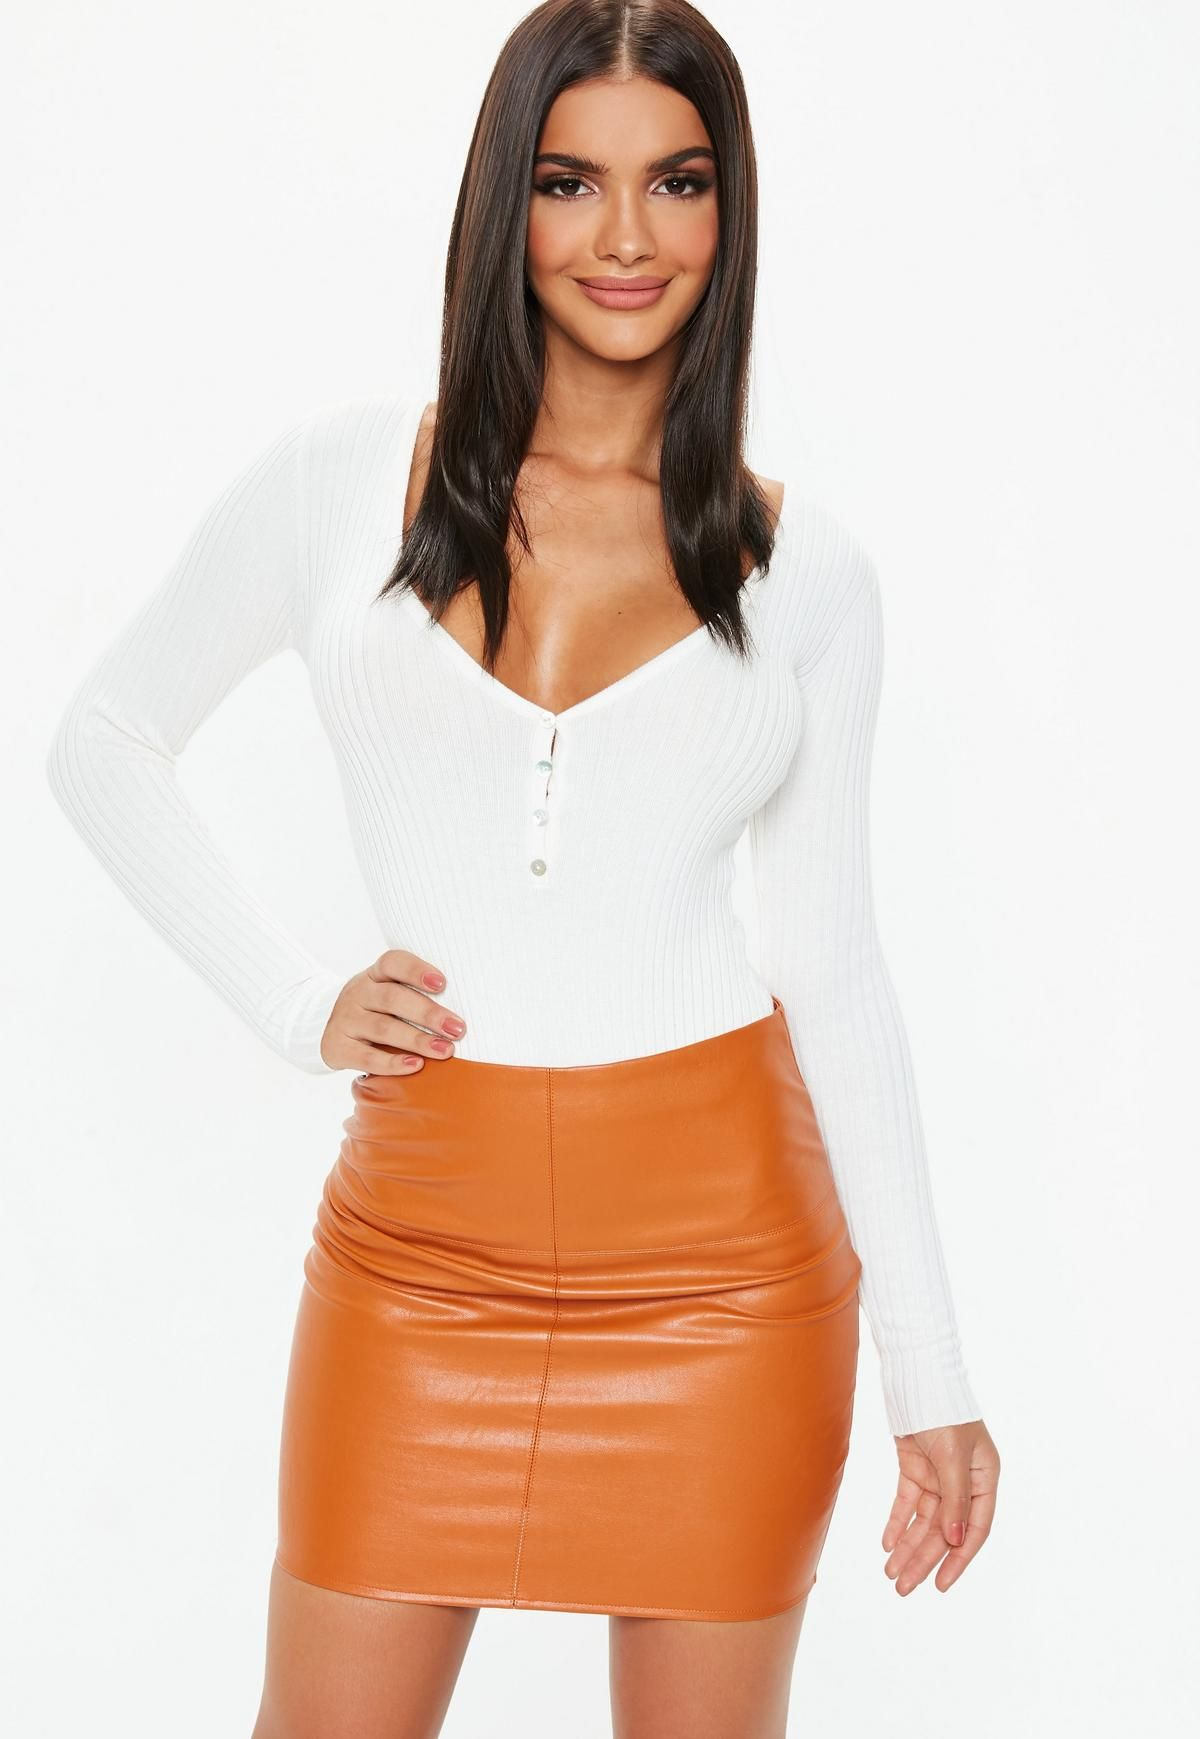 f3148b0f35 Women's High Waist Zip Faux Leather Skirt in 2019 | ZORKET trends ...